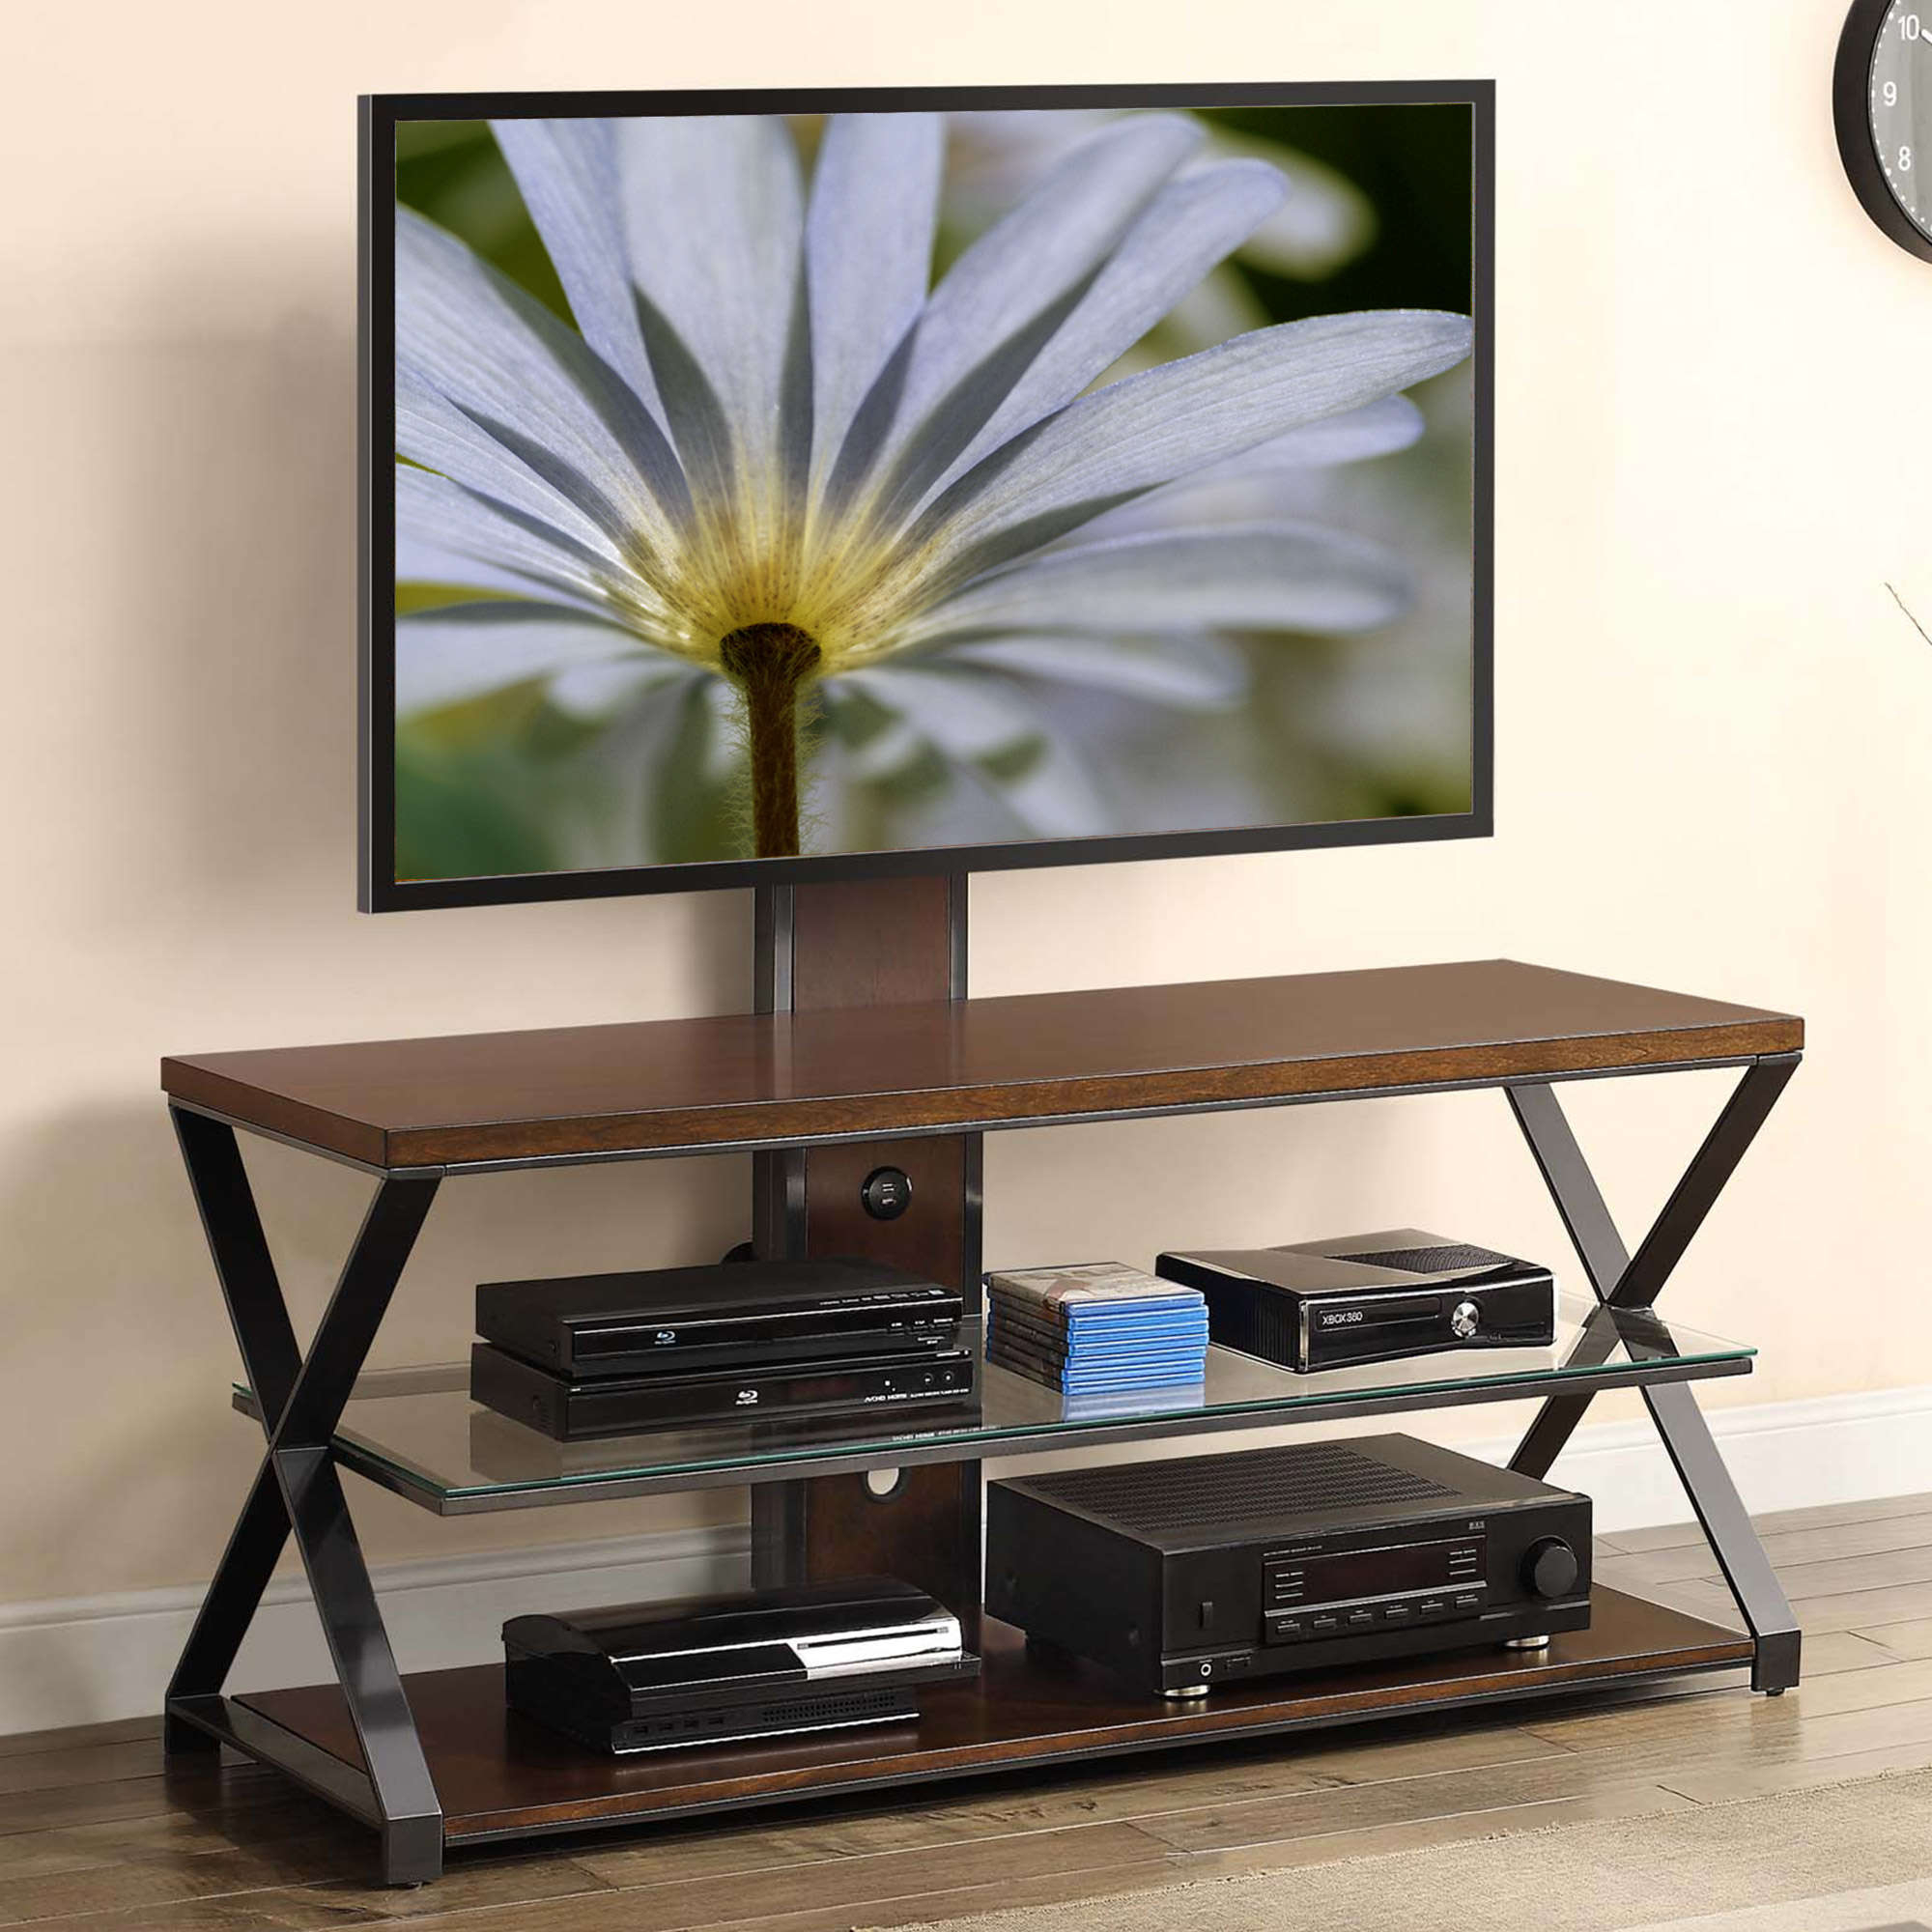 "Jaxon 3-In-1 Cognac Tv Stand For Tvs Up To 70"" - Walmart with Jaxon 76 Inch Plasma Console Tables (Image 13 of 30)"